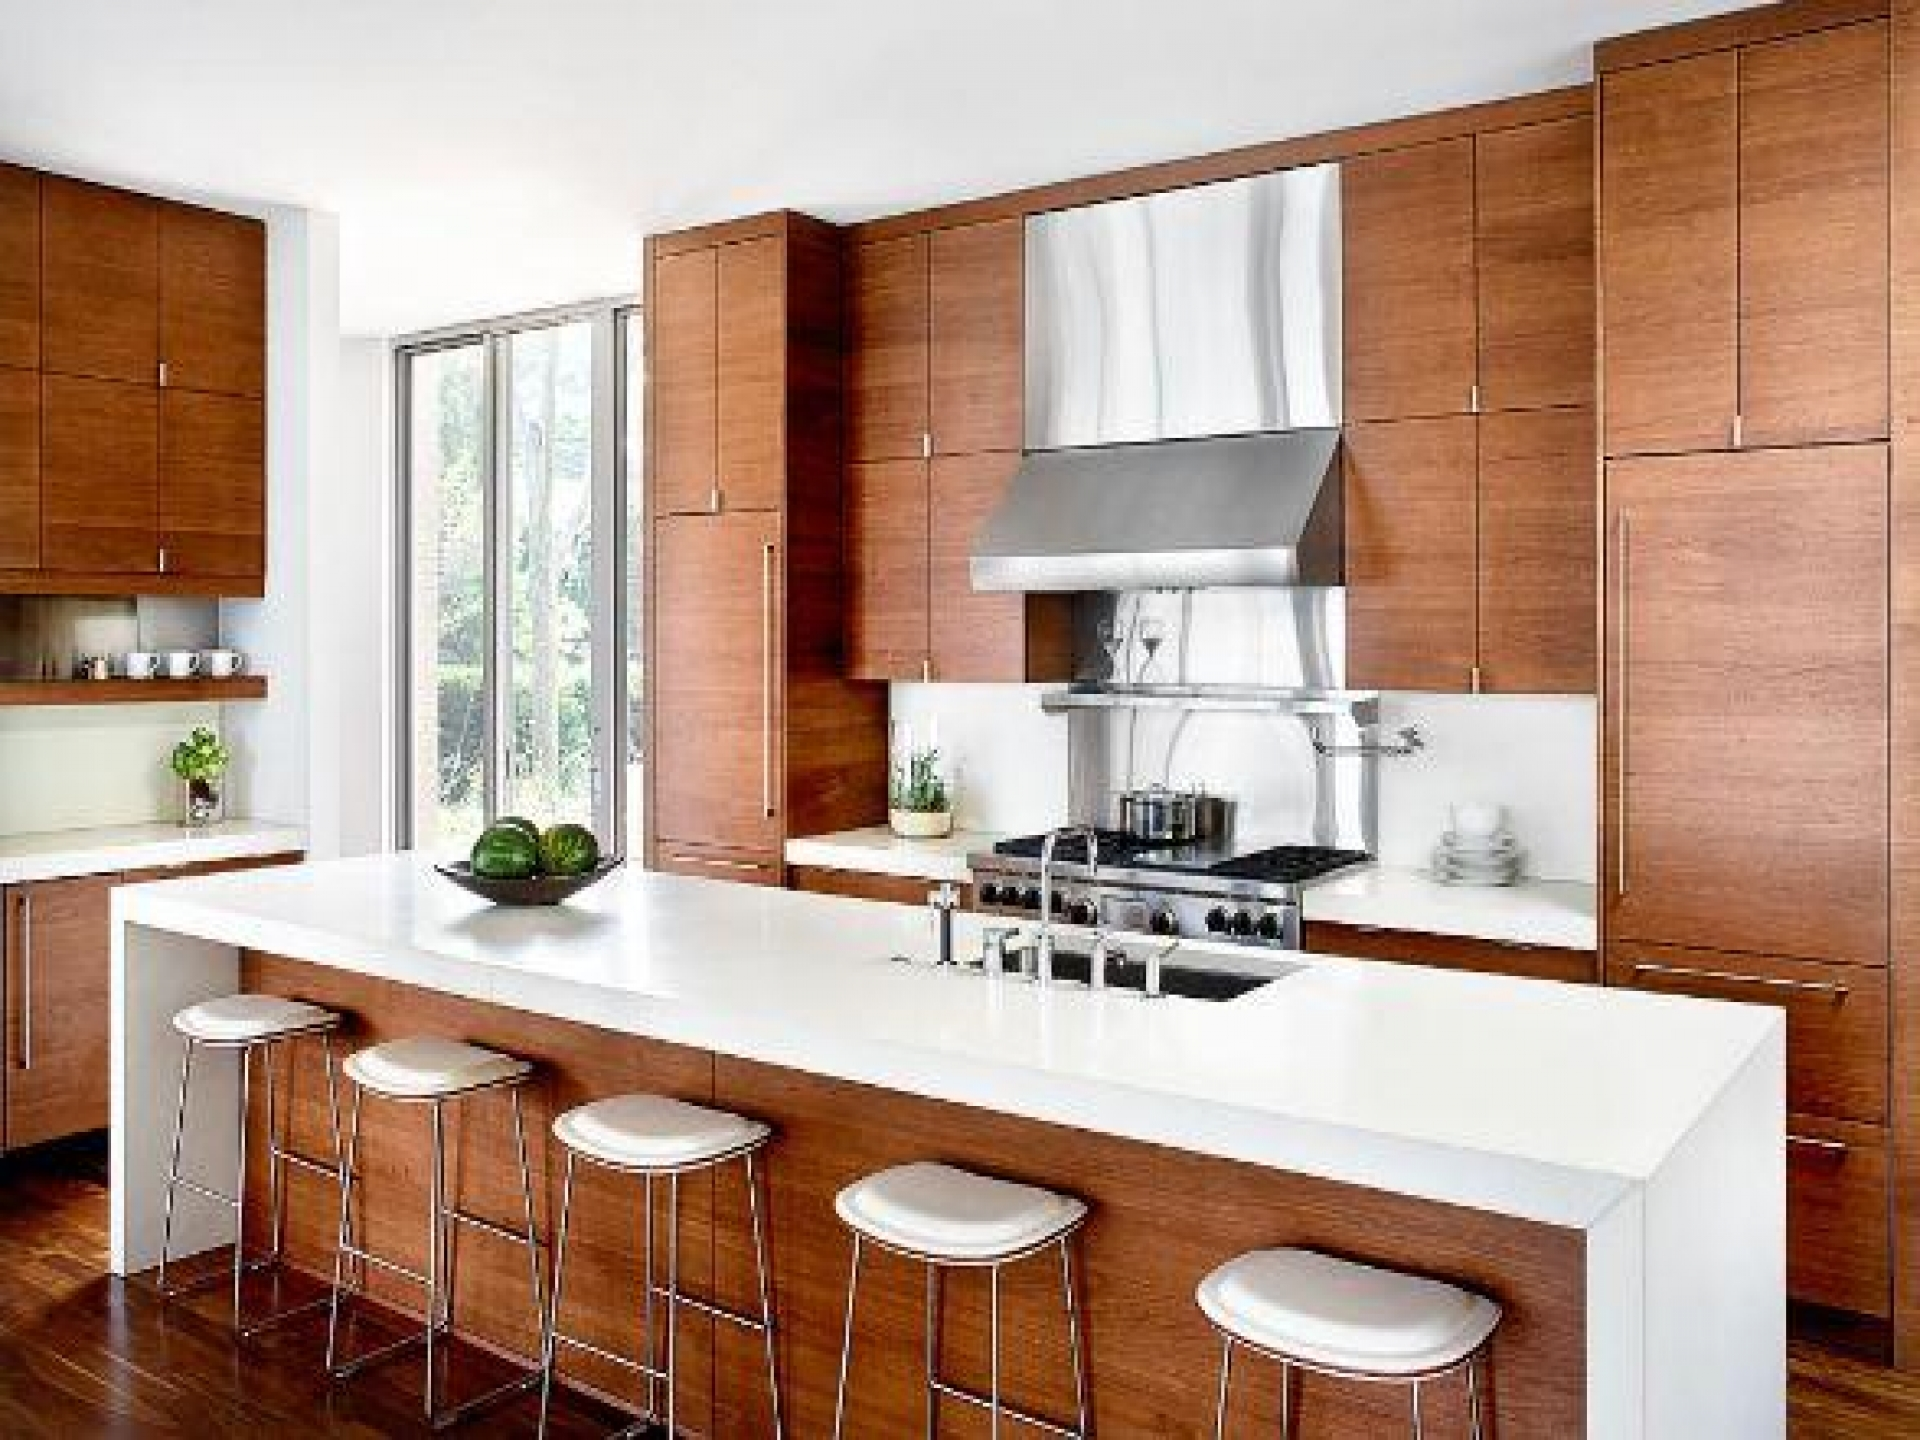 3 Ways To Beautify Your Kitchen With IKEA Kitchen Design